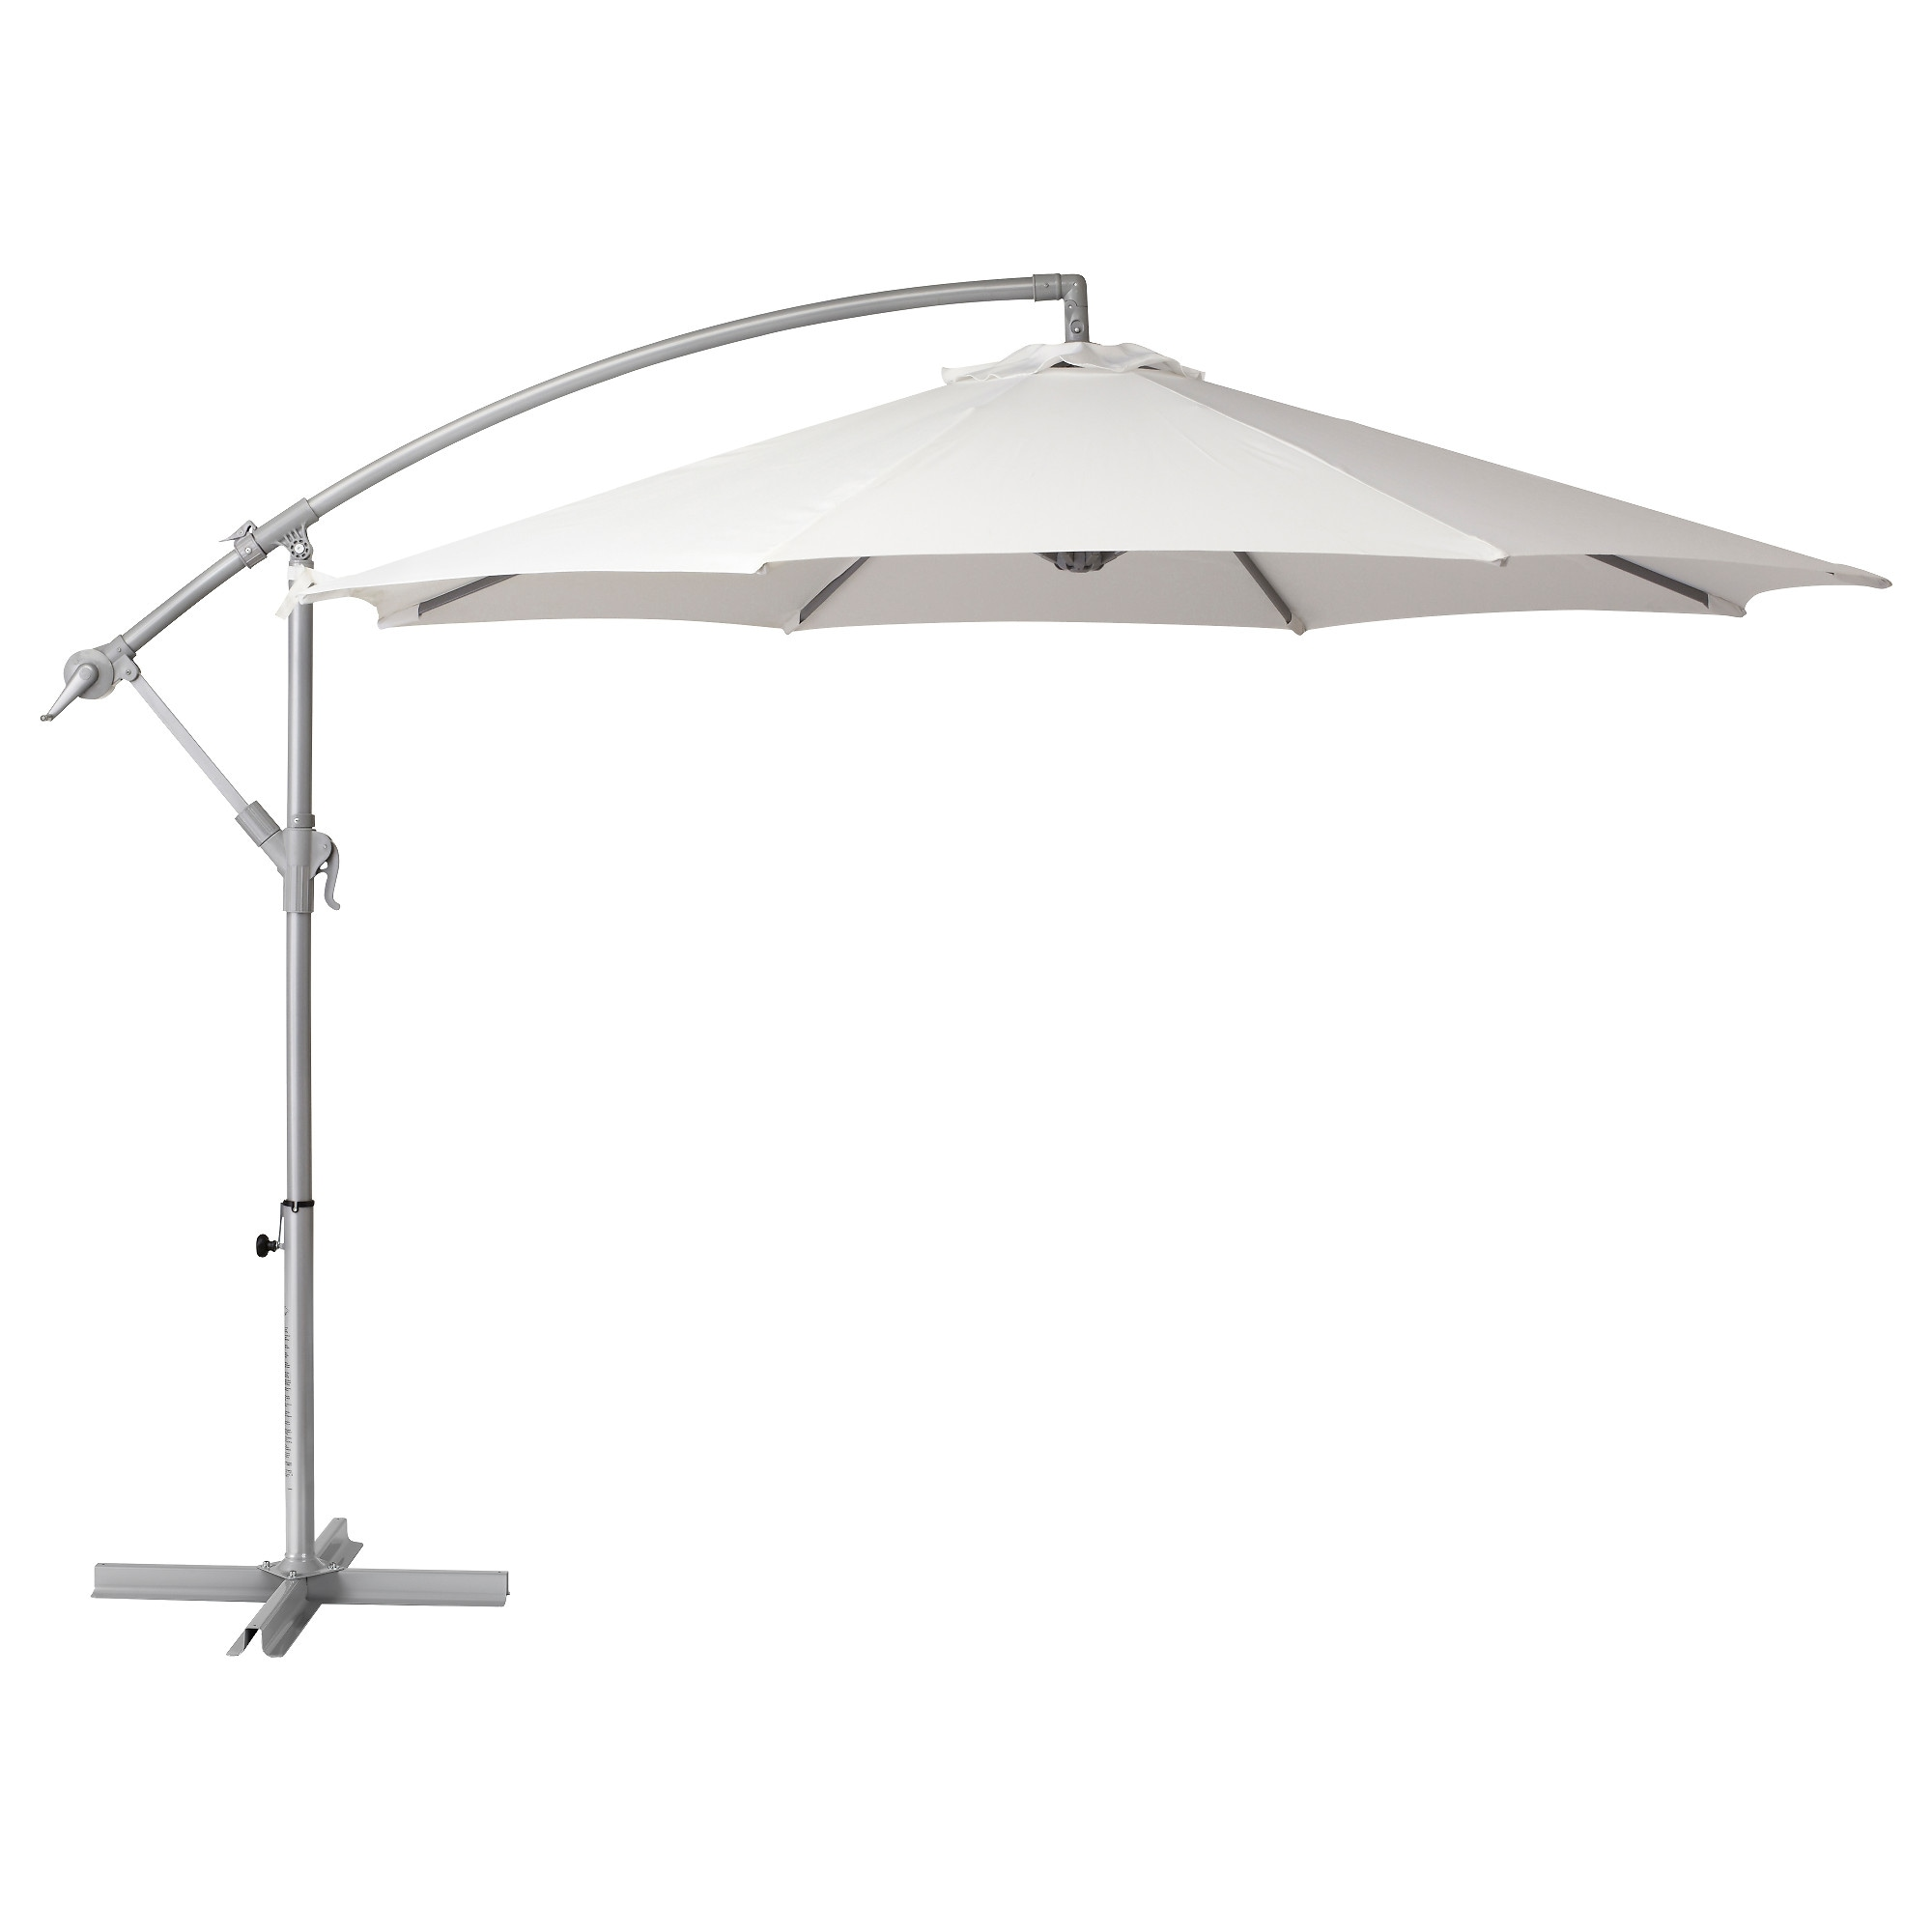 BAGG–N Umbrella hanging IKEA